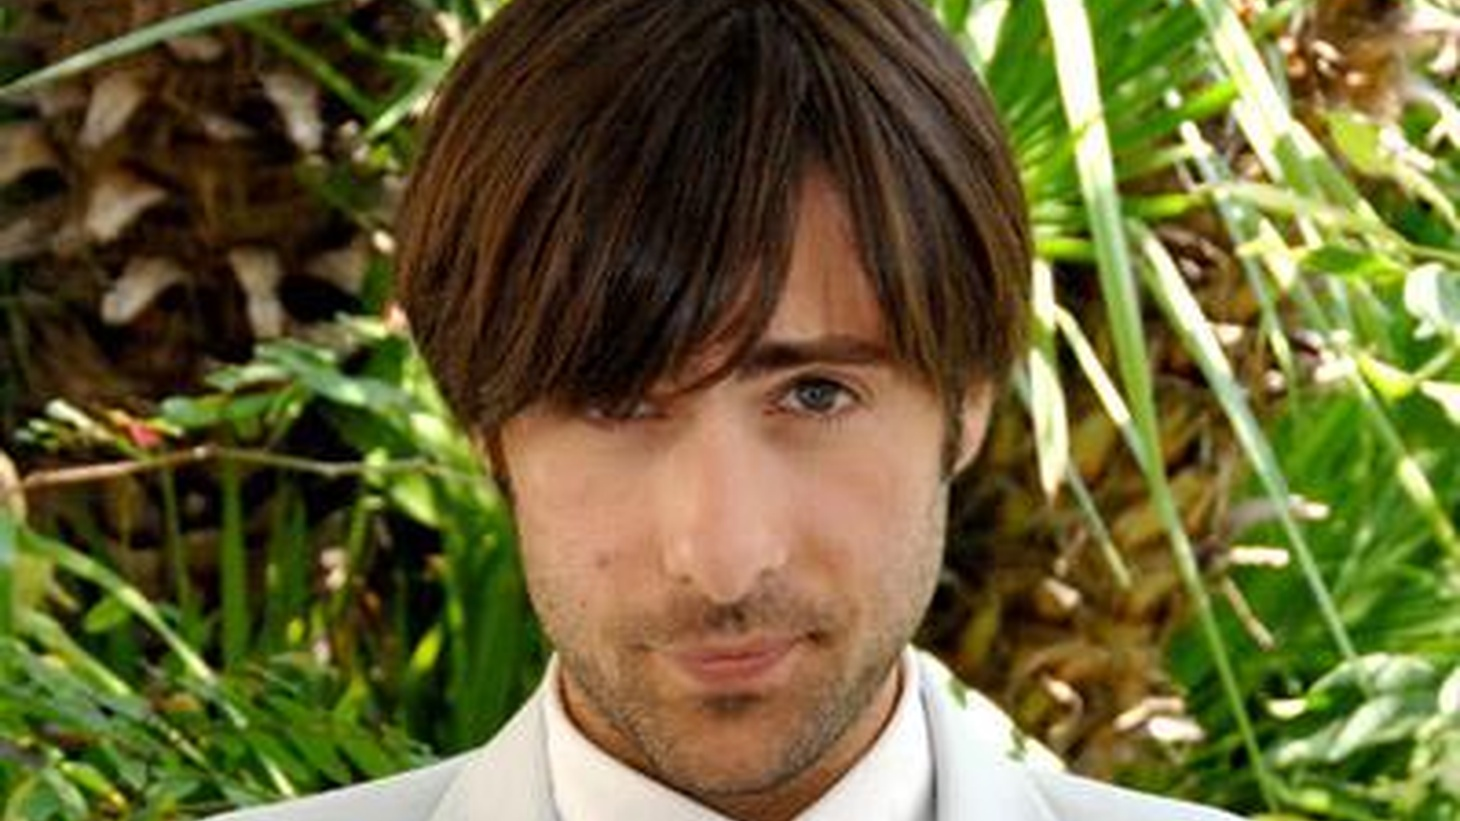 Actor Jason Schwartzman has spent a lot of time on KCRW's airwaves as a musician, under the name Coconut Records. We'll hear what makes him tick and he'll share some of his favorite songs when he joins Jason Bentley as Guest DJ on Morning Becomes Eclectic at 11:15am.